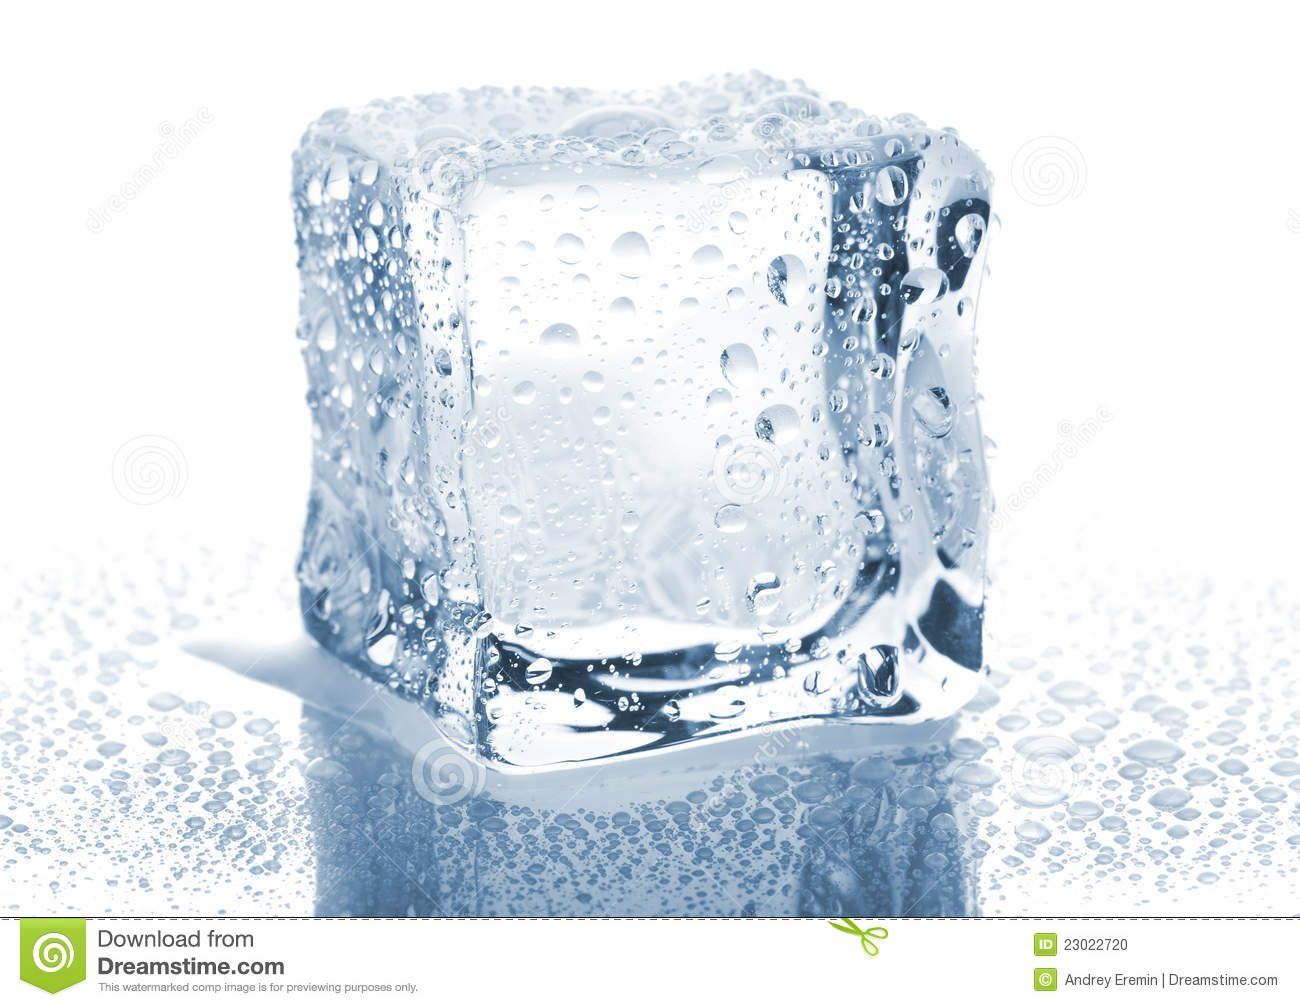 official store crazy price new arrival Single Ice Cube by Andrey Eremin | Stock photos, Ice stock ...